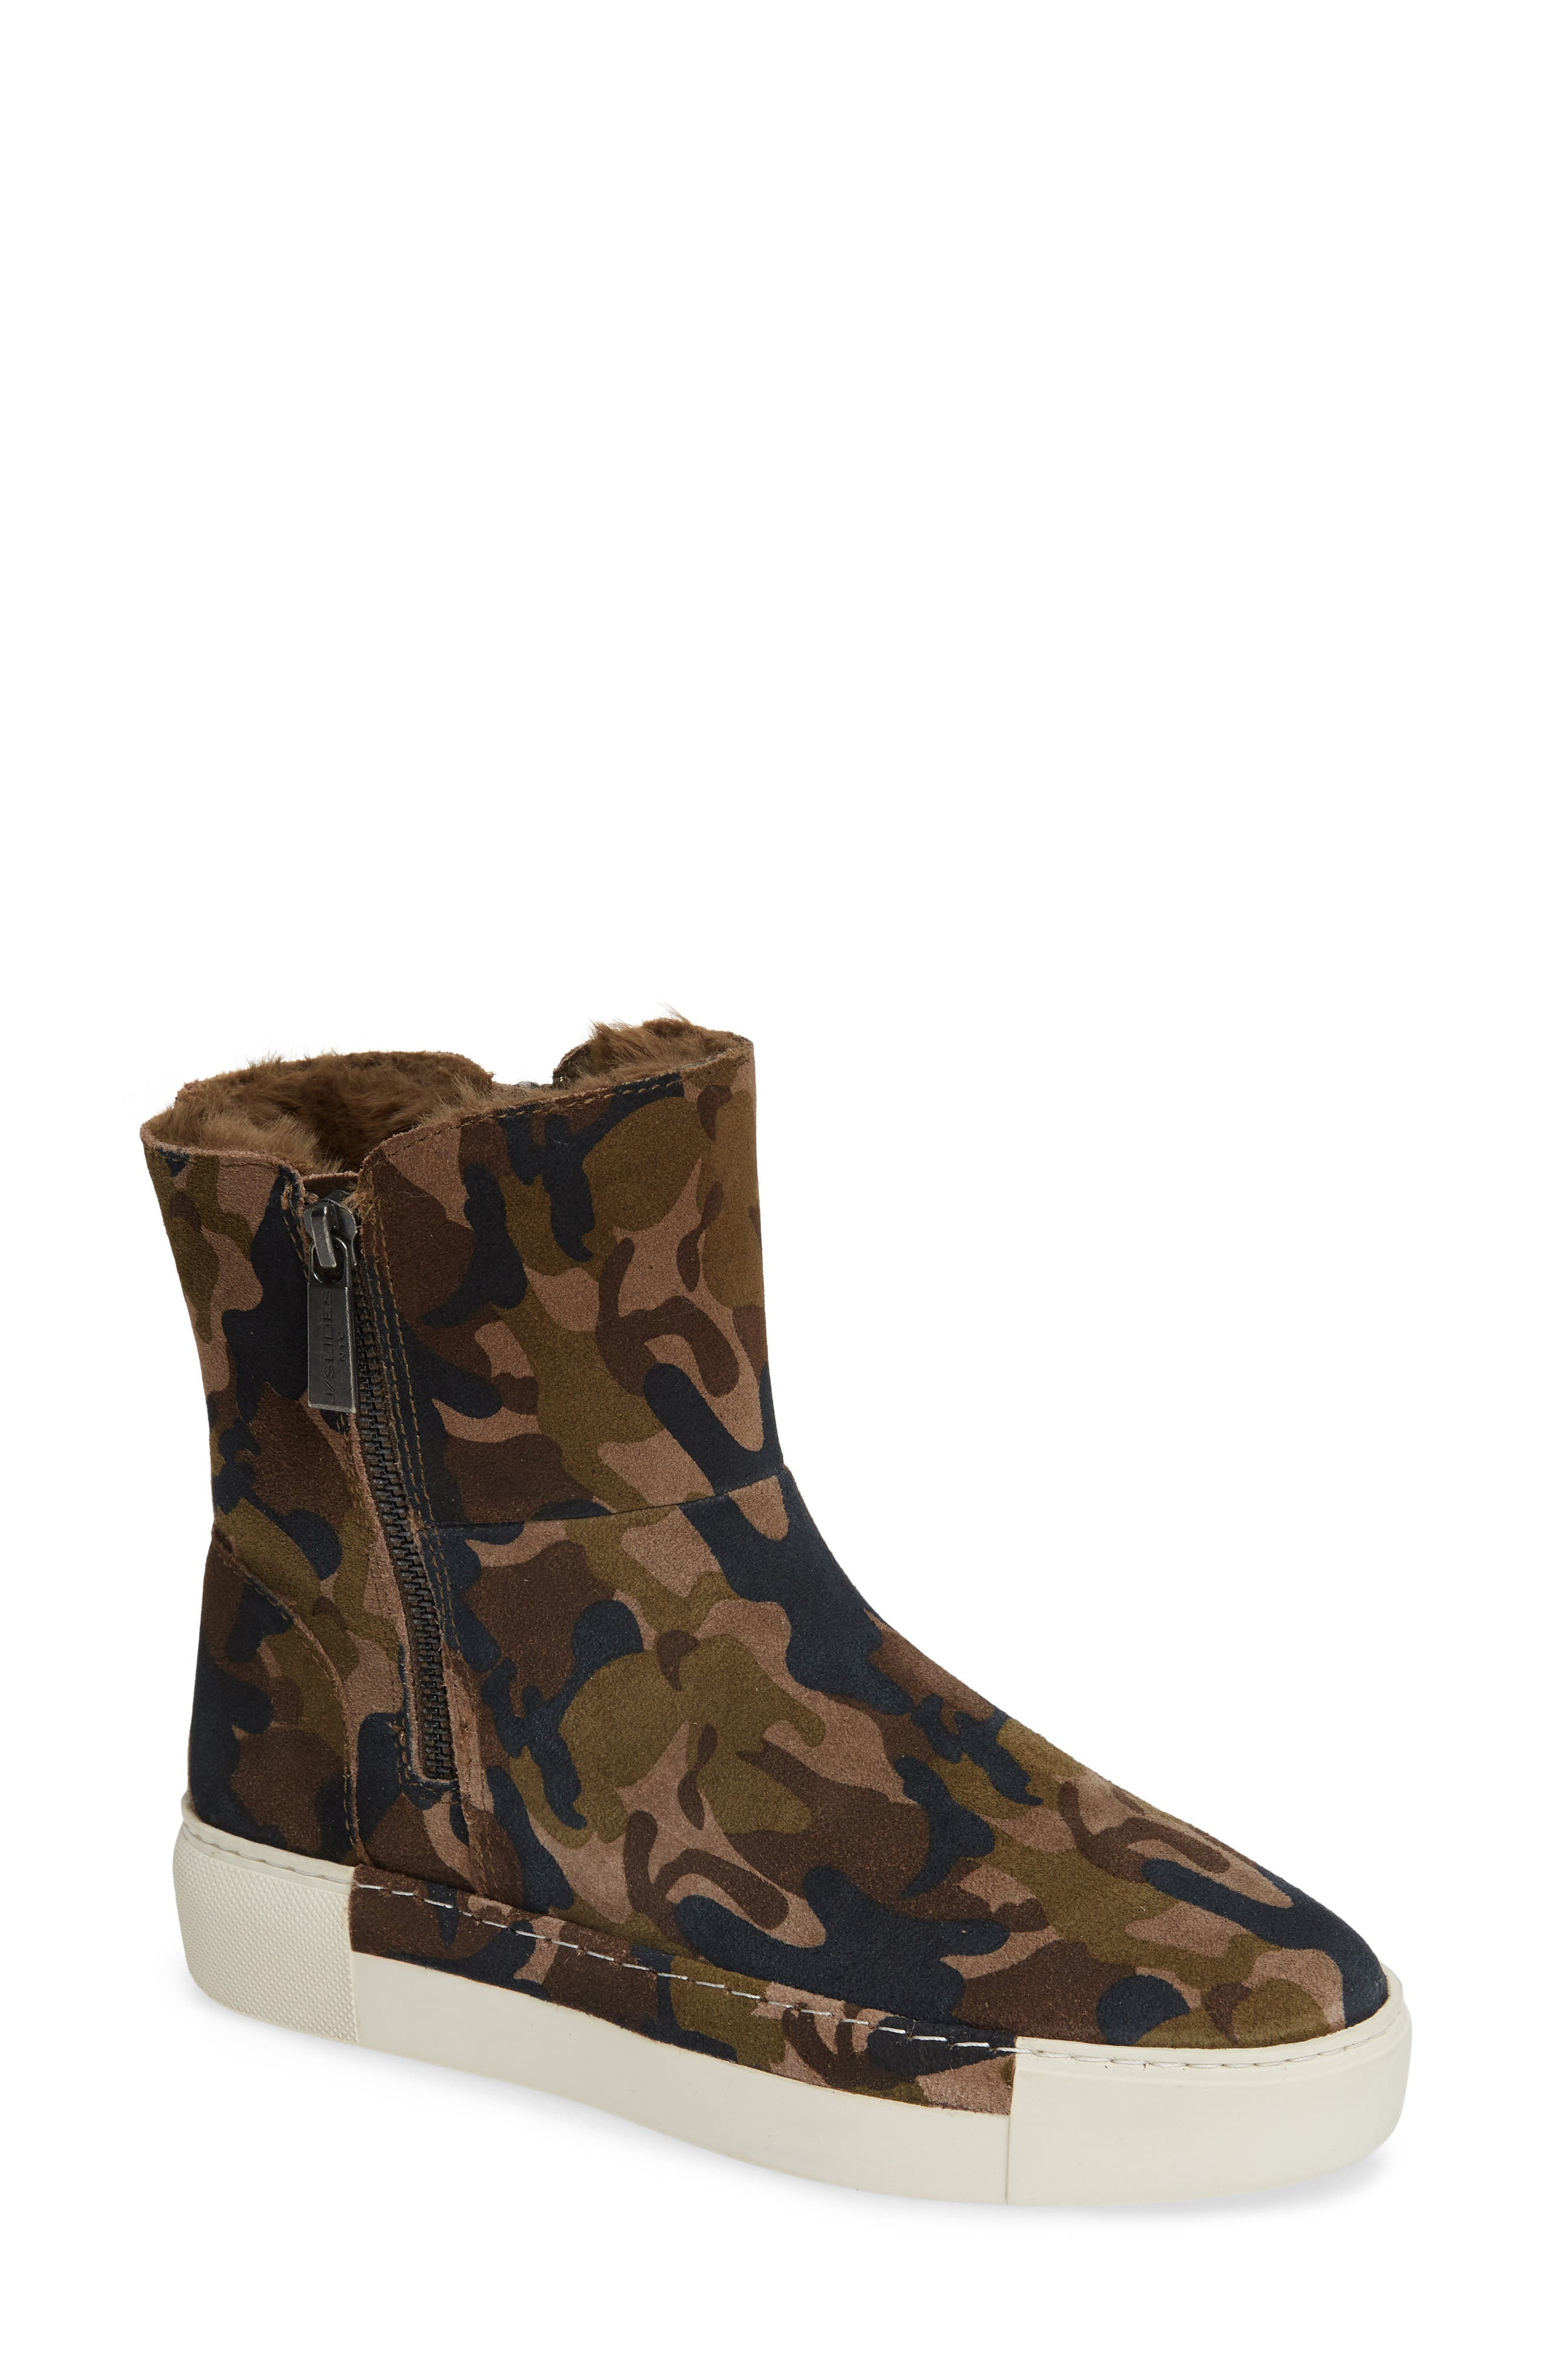 JSLIDES Victory Double Zip Boot in Green Camo Suede